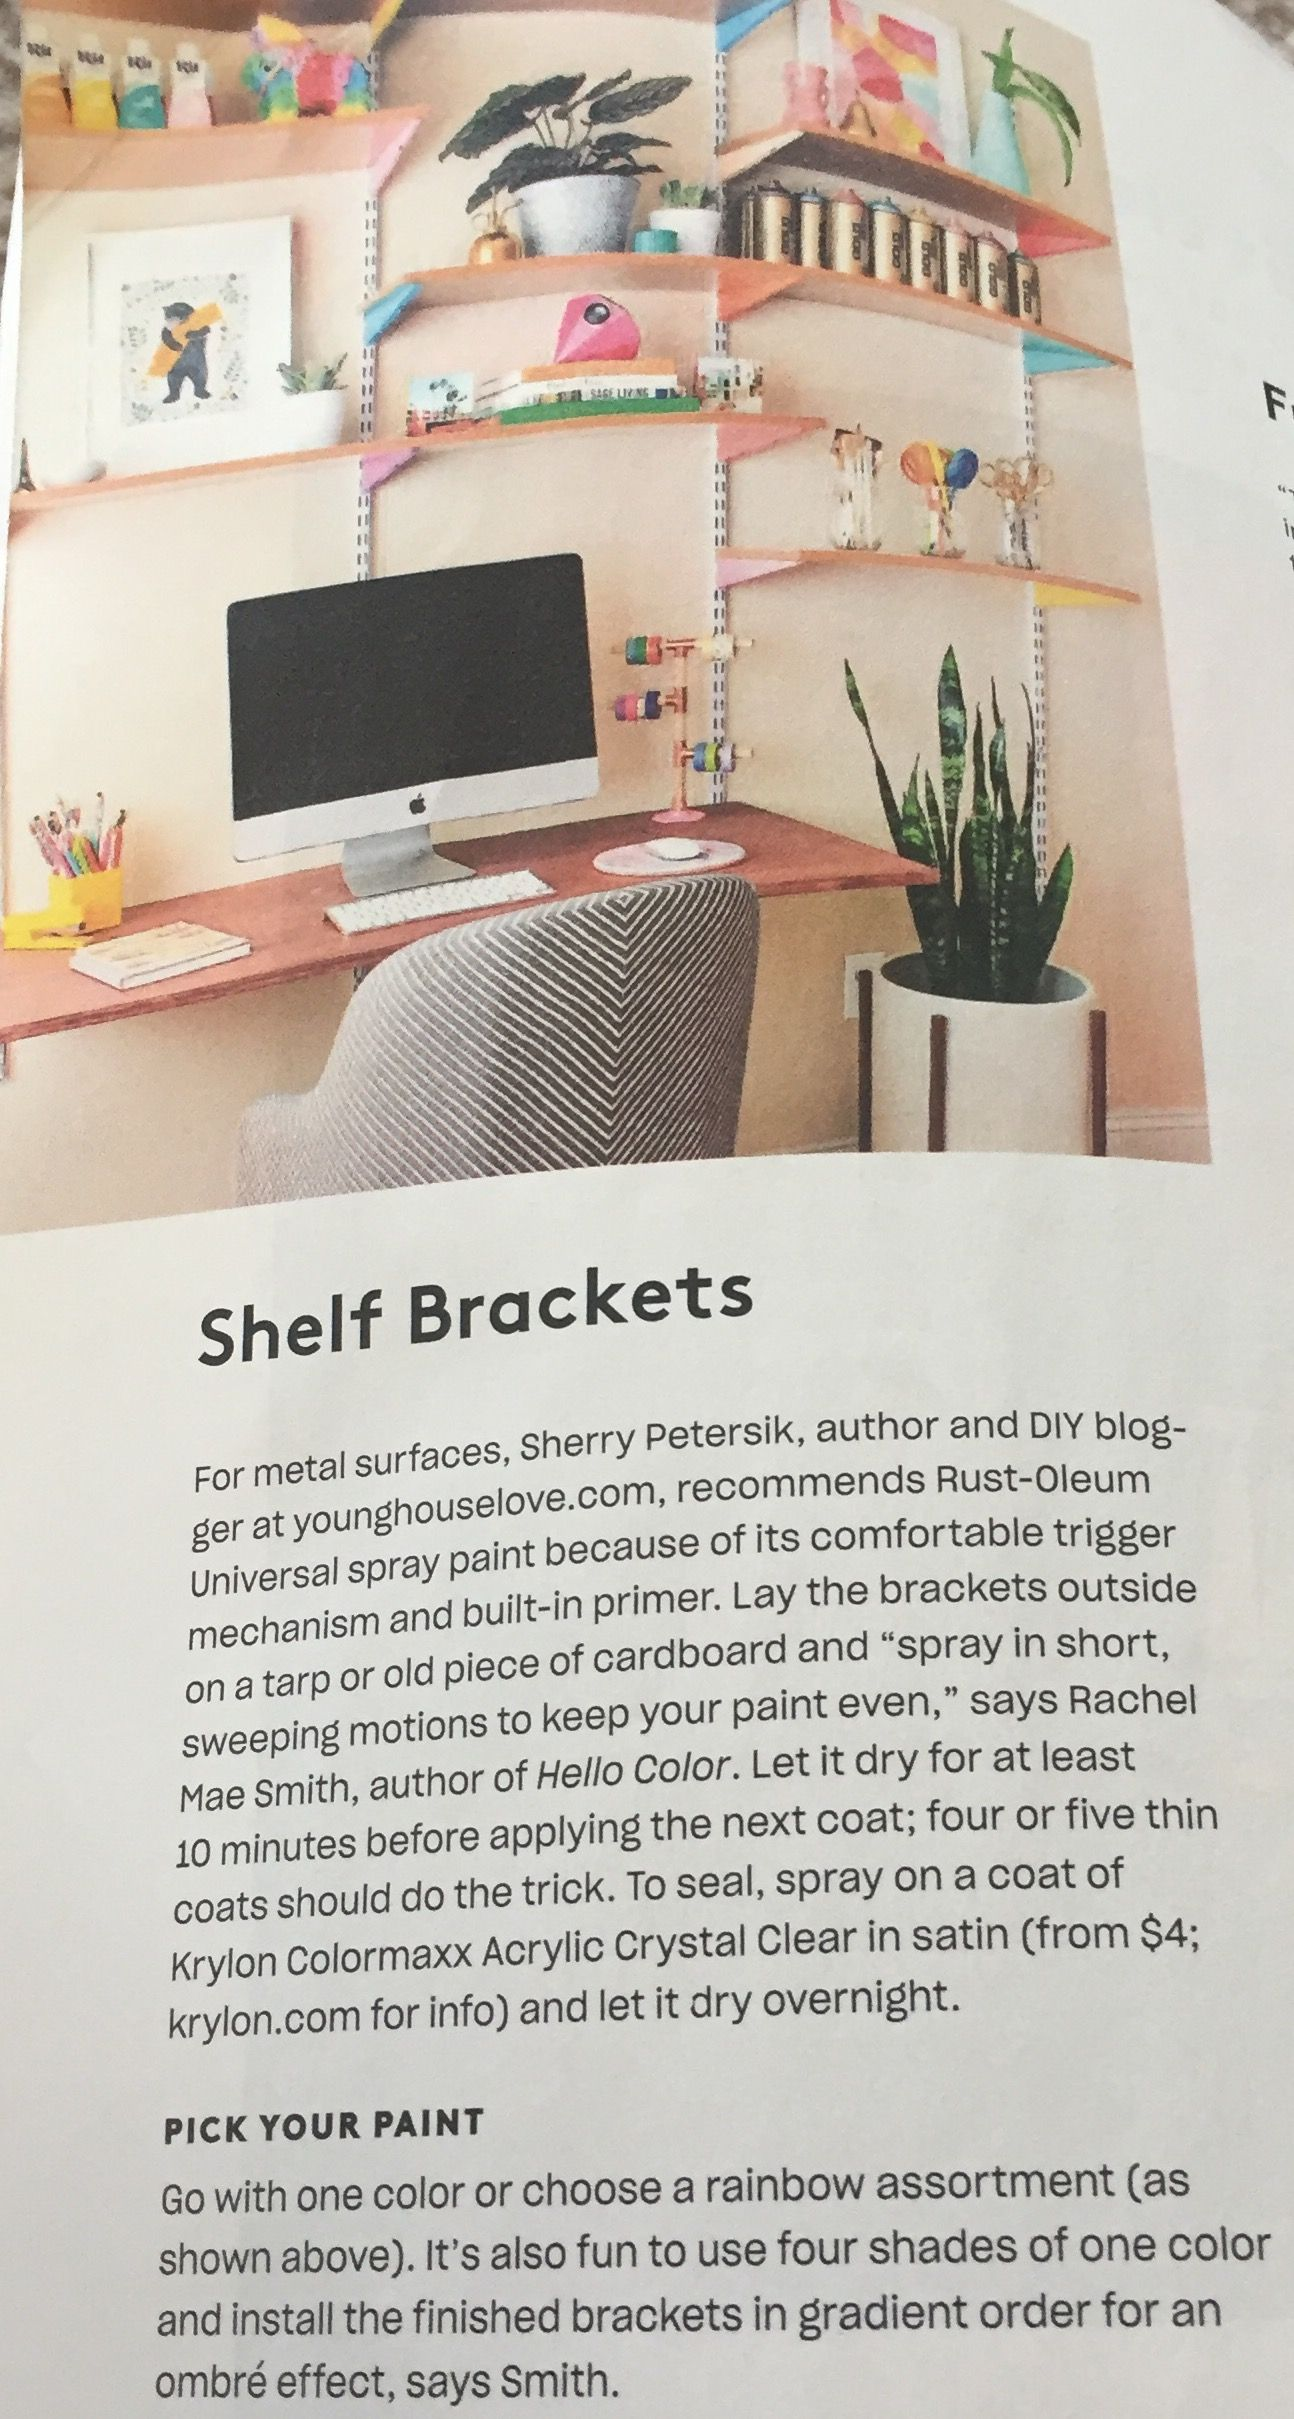 Add color to a room by painting shelf brackets different colors for